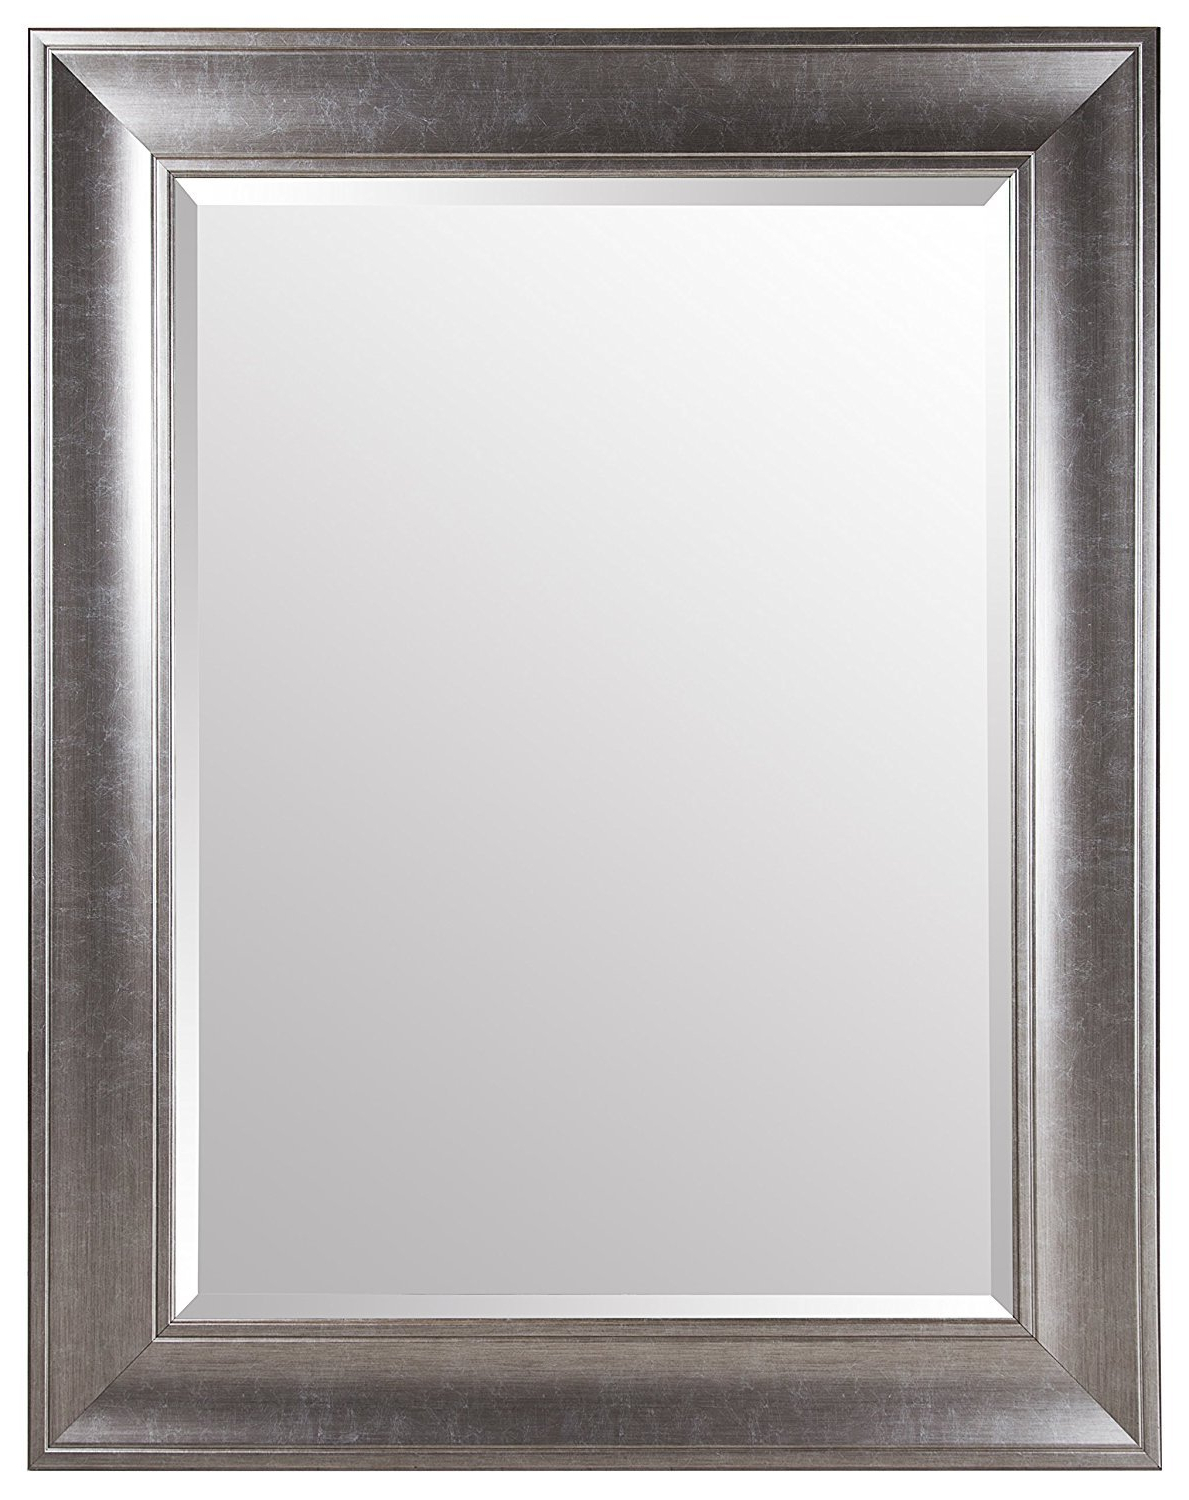 Best And Newest Gallery Solutions Large 39x49 Beveled Wall Mirror With Brushed Nickel Frame Intended For Brushed Nickel Wall Mirrors (View 2 of 14)